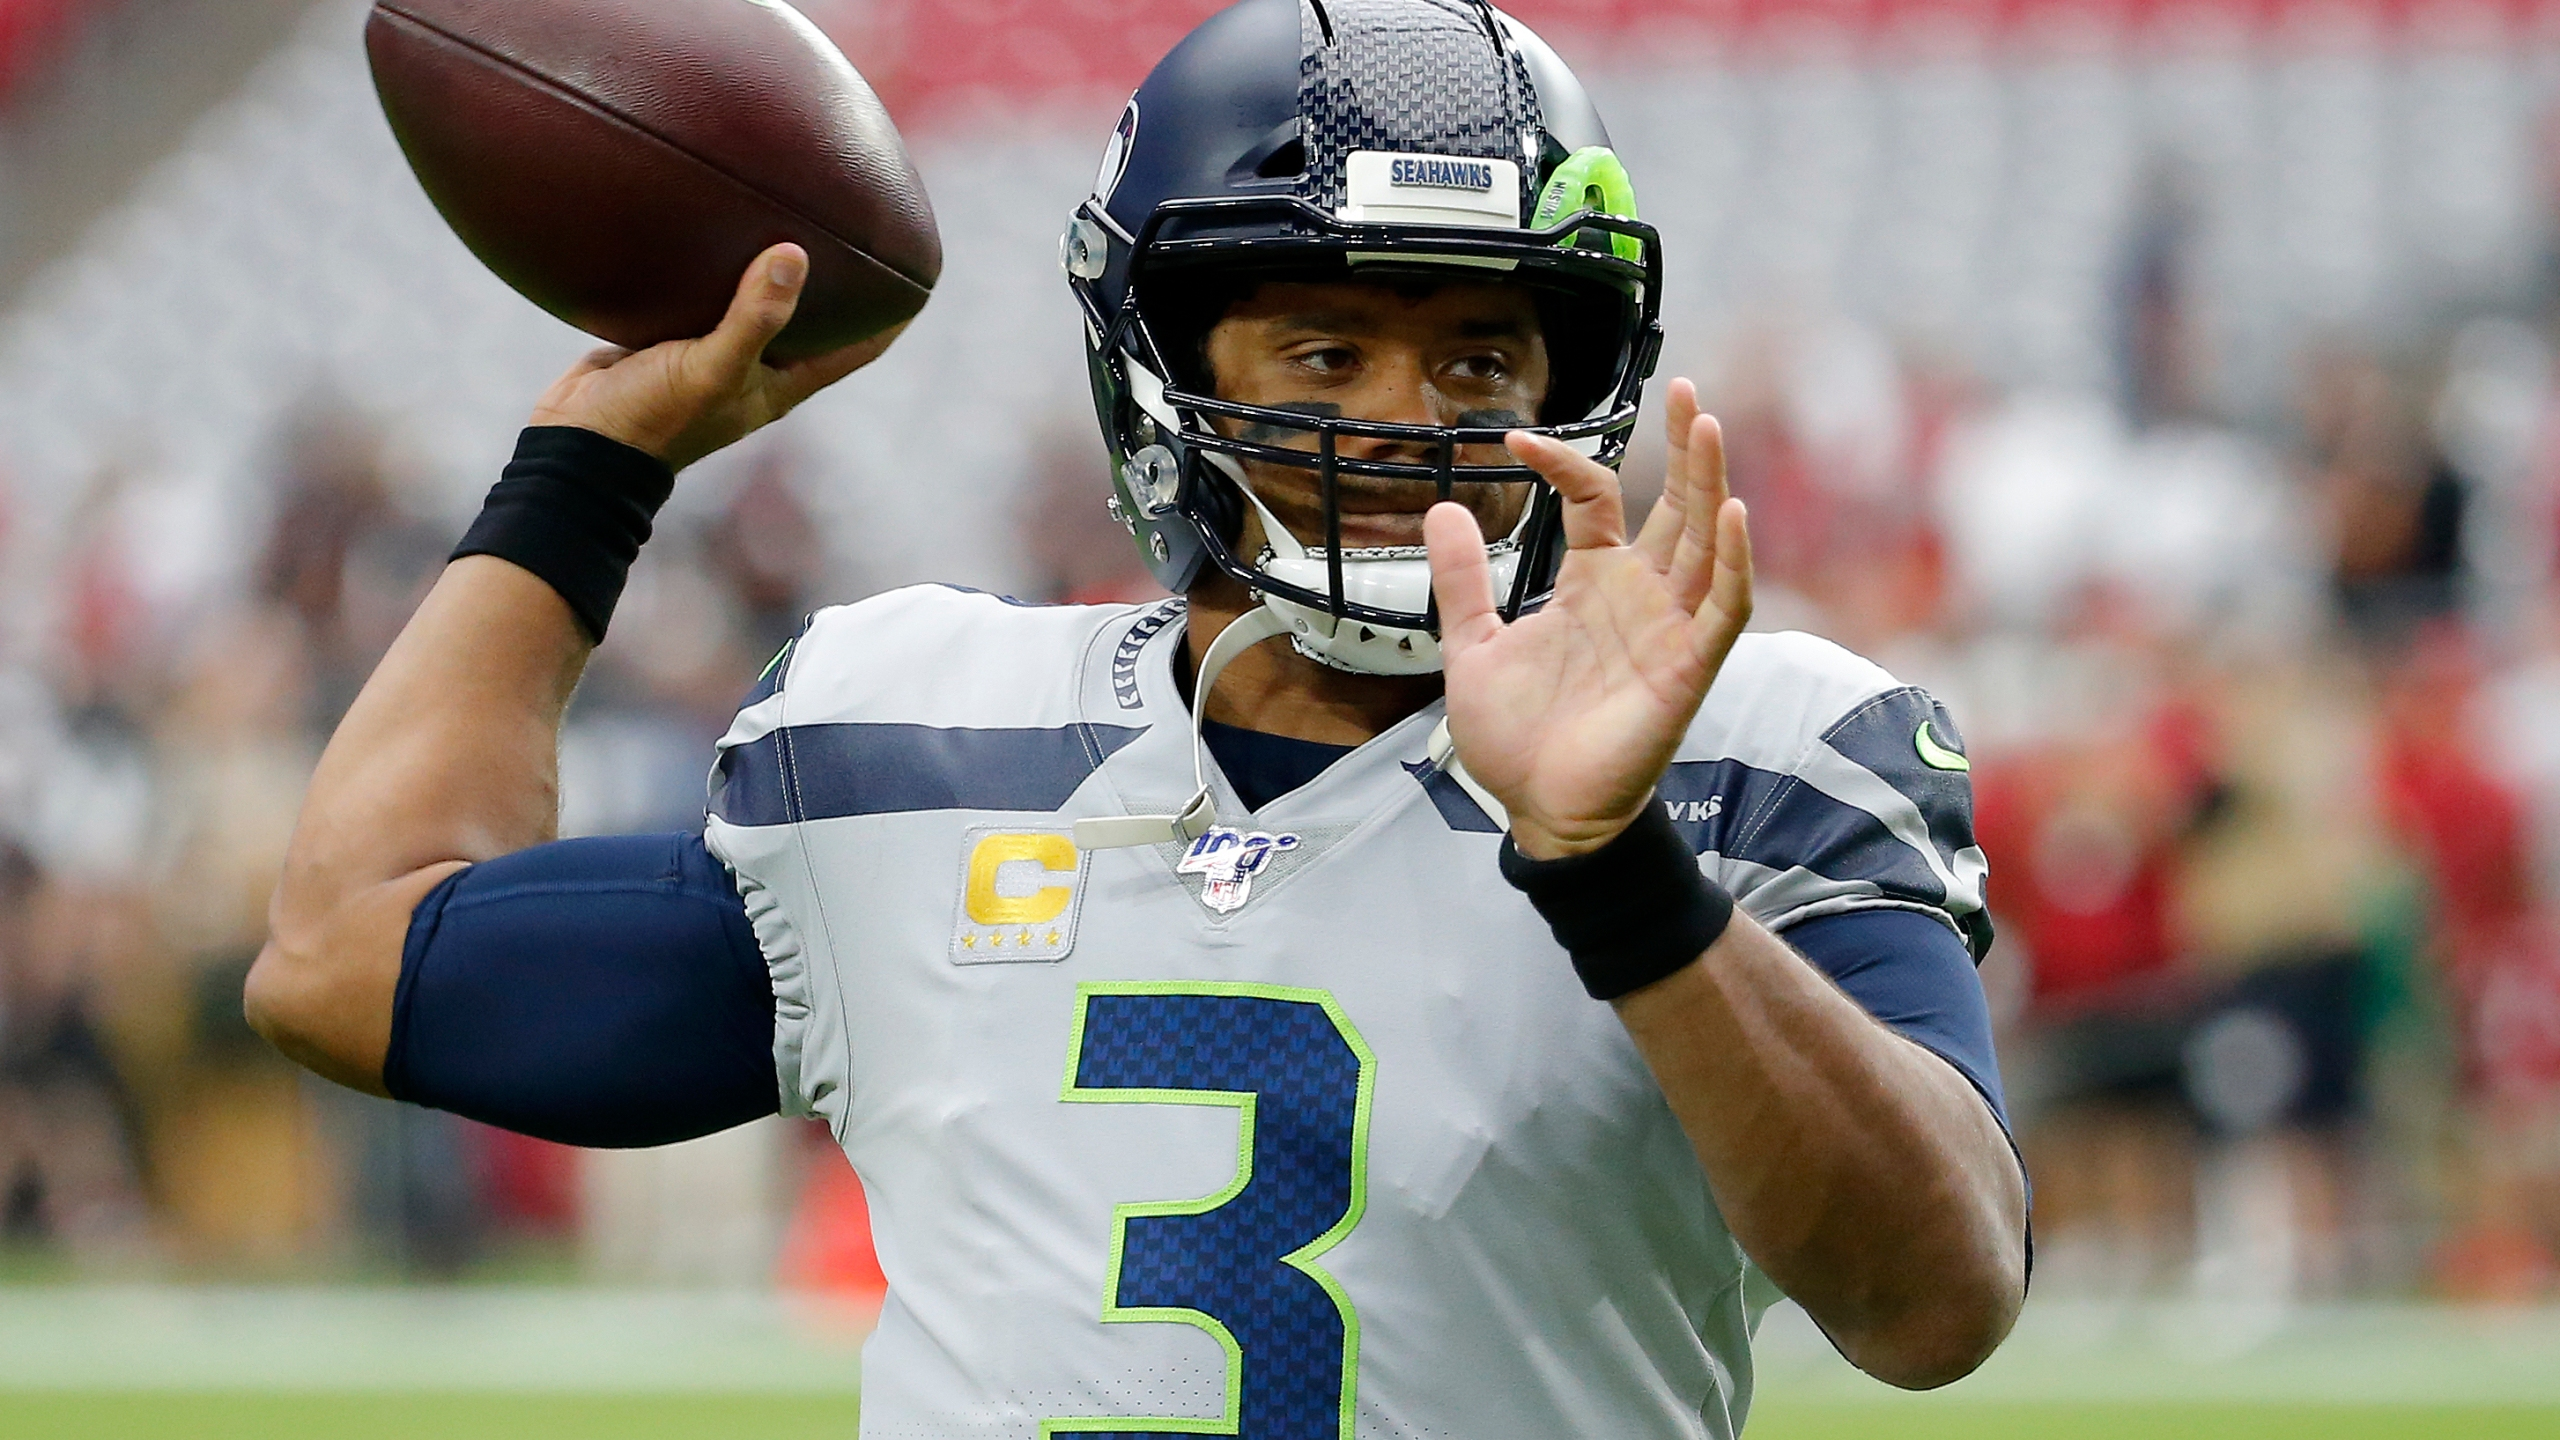 Seahawks Wilson Setting Qb Standard For Cardinals Murray